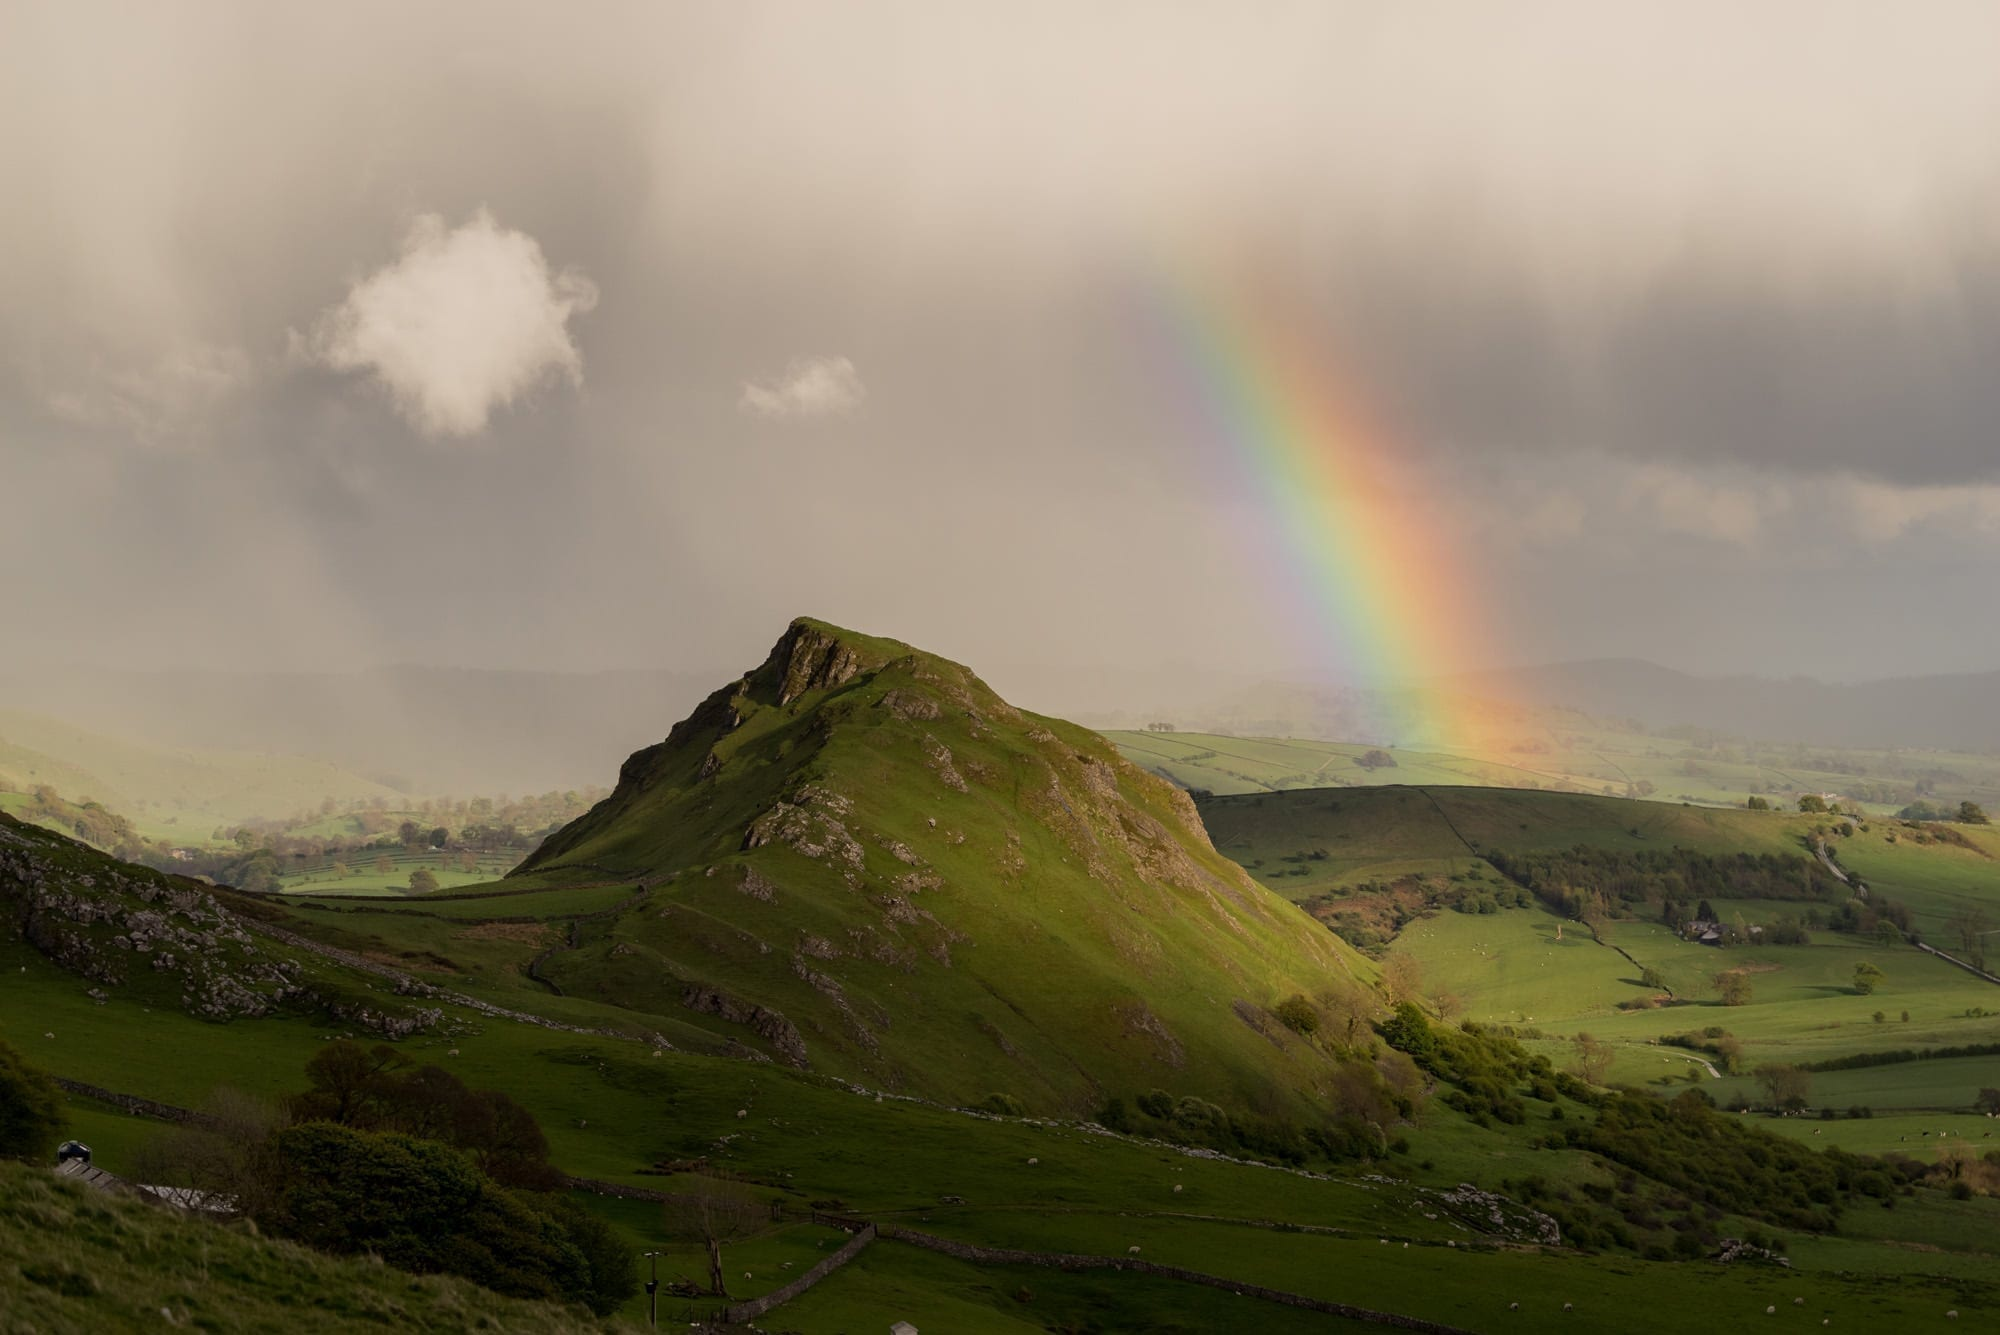 Rainbow Over Chrome Hill - Chrome and Parkhouse Hill Photographic Walk Photography Workshop